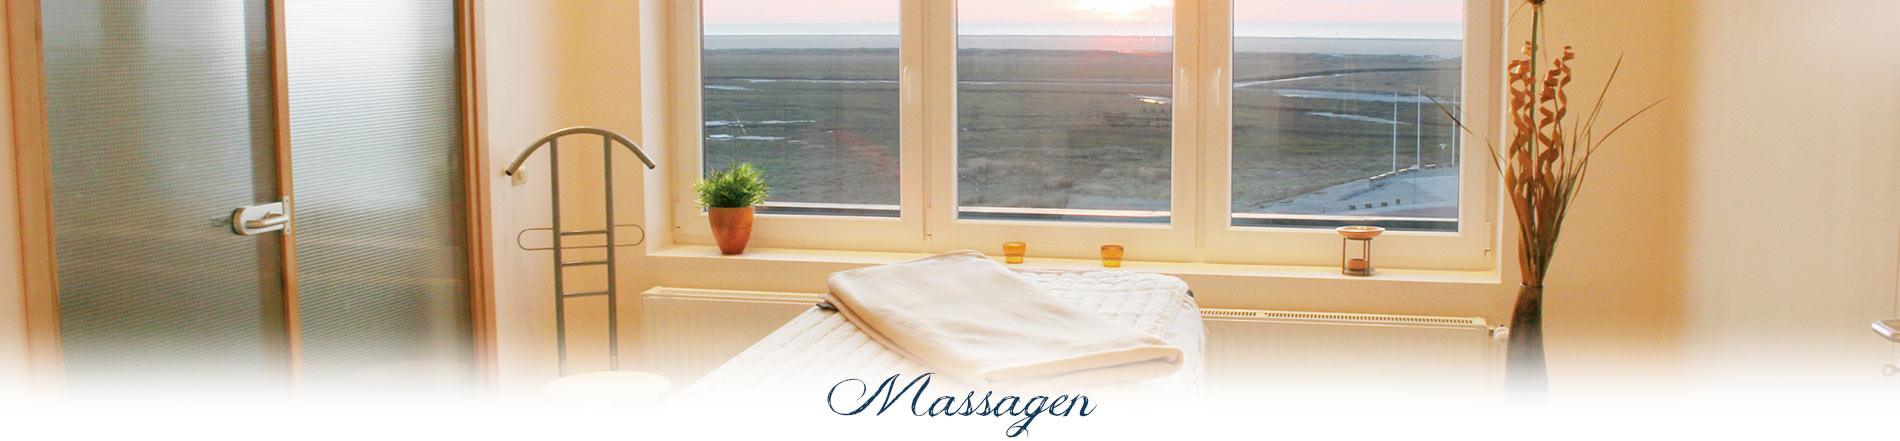 massagen ambassador hotel spa st peter ording. Black Bedroom Furniture Sets. Home Design Ideas